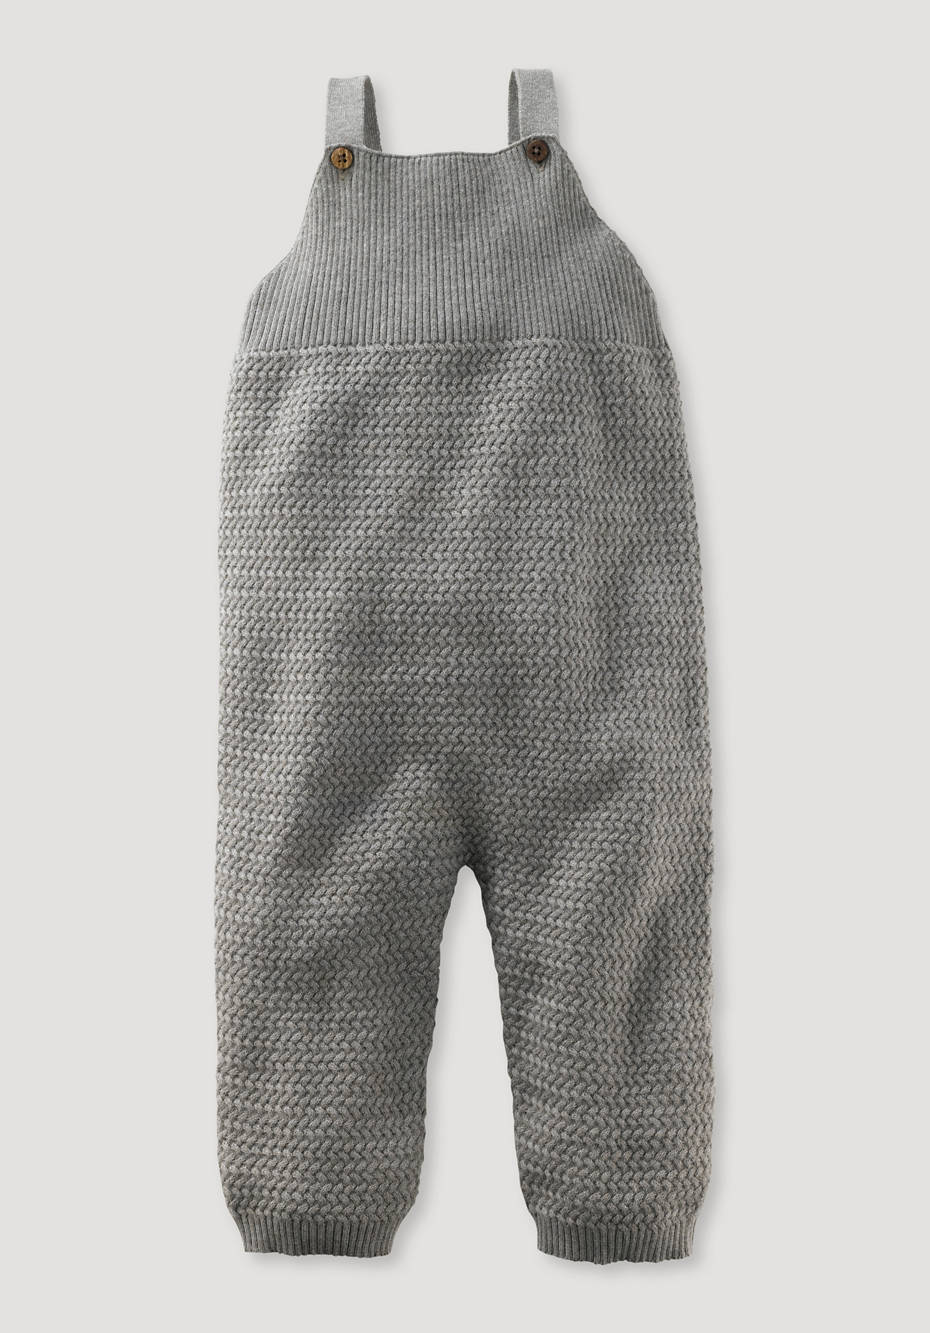 Romper made of organic cotton with cashmere